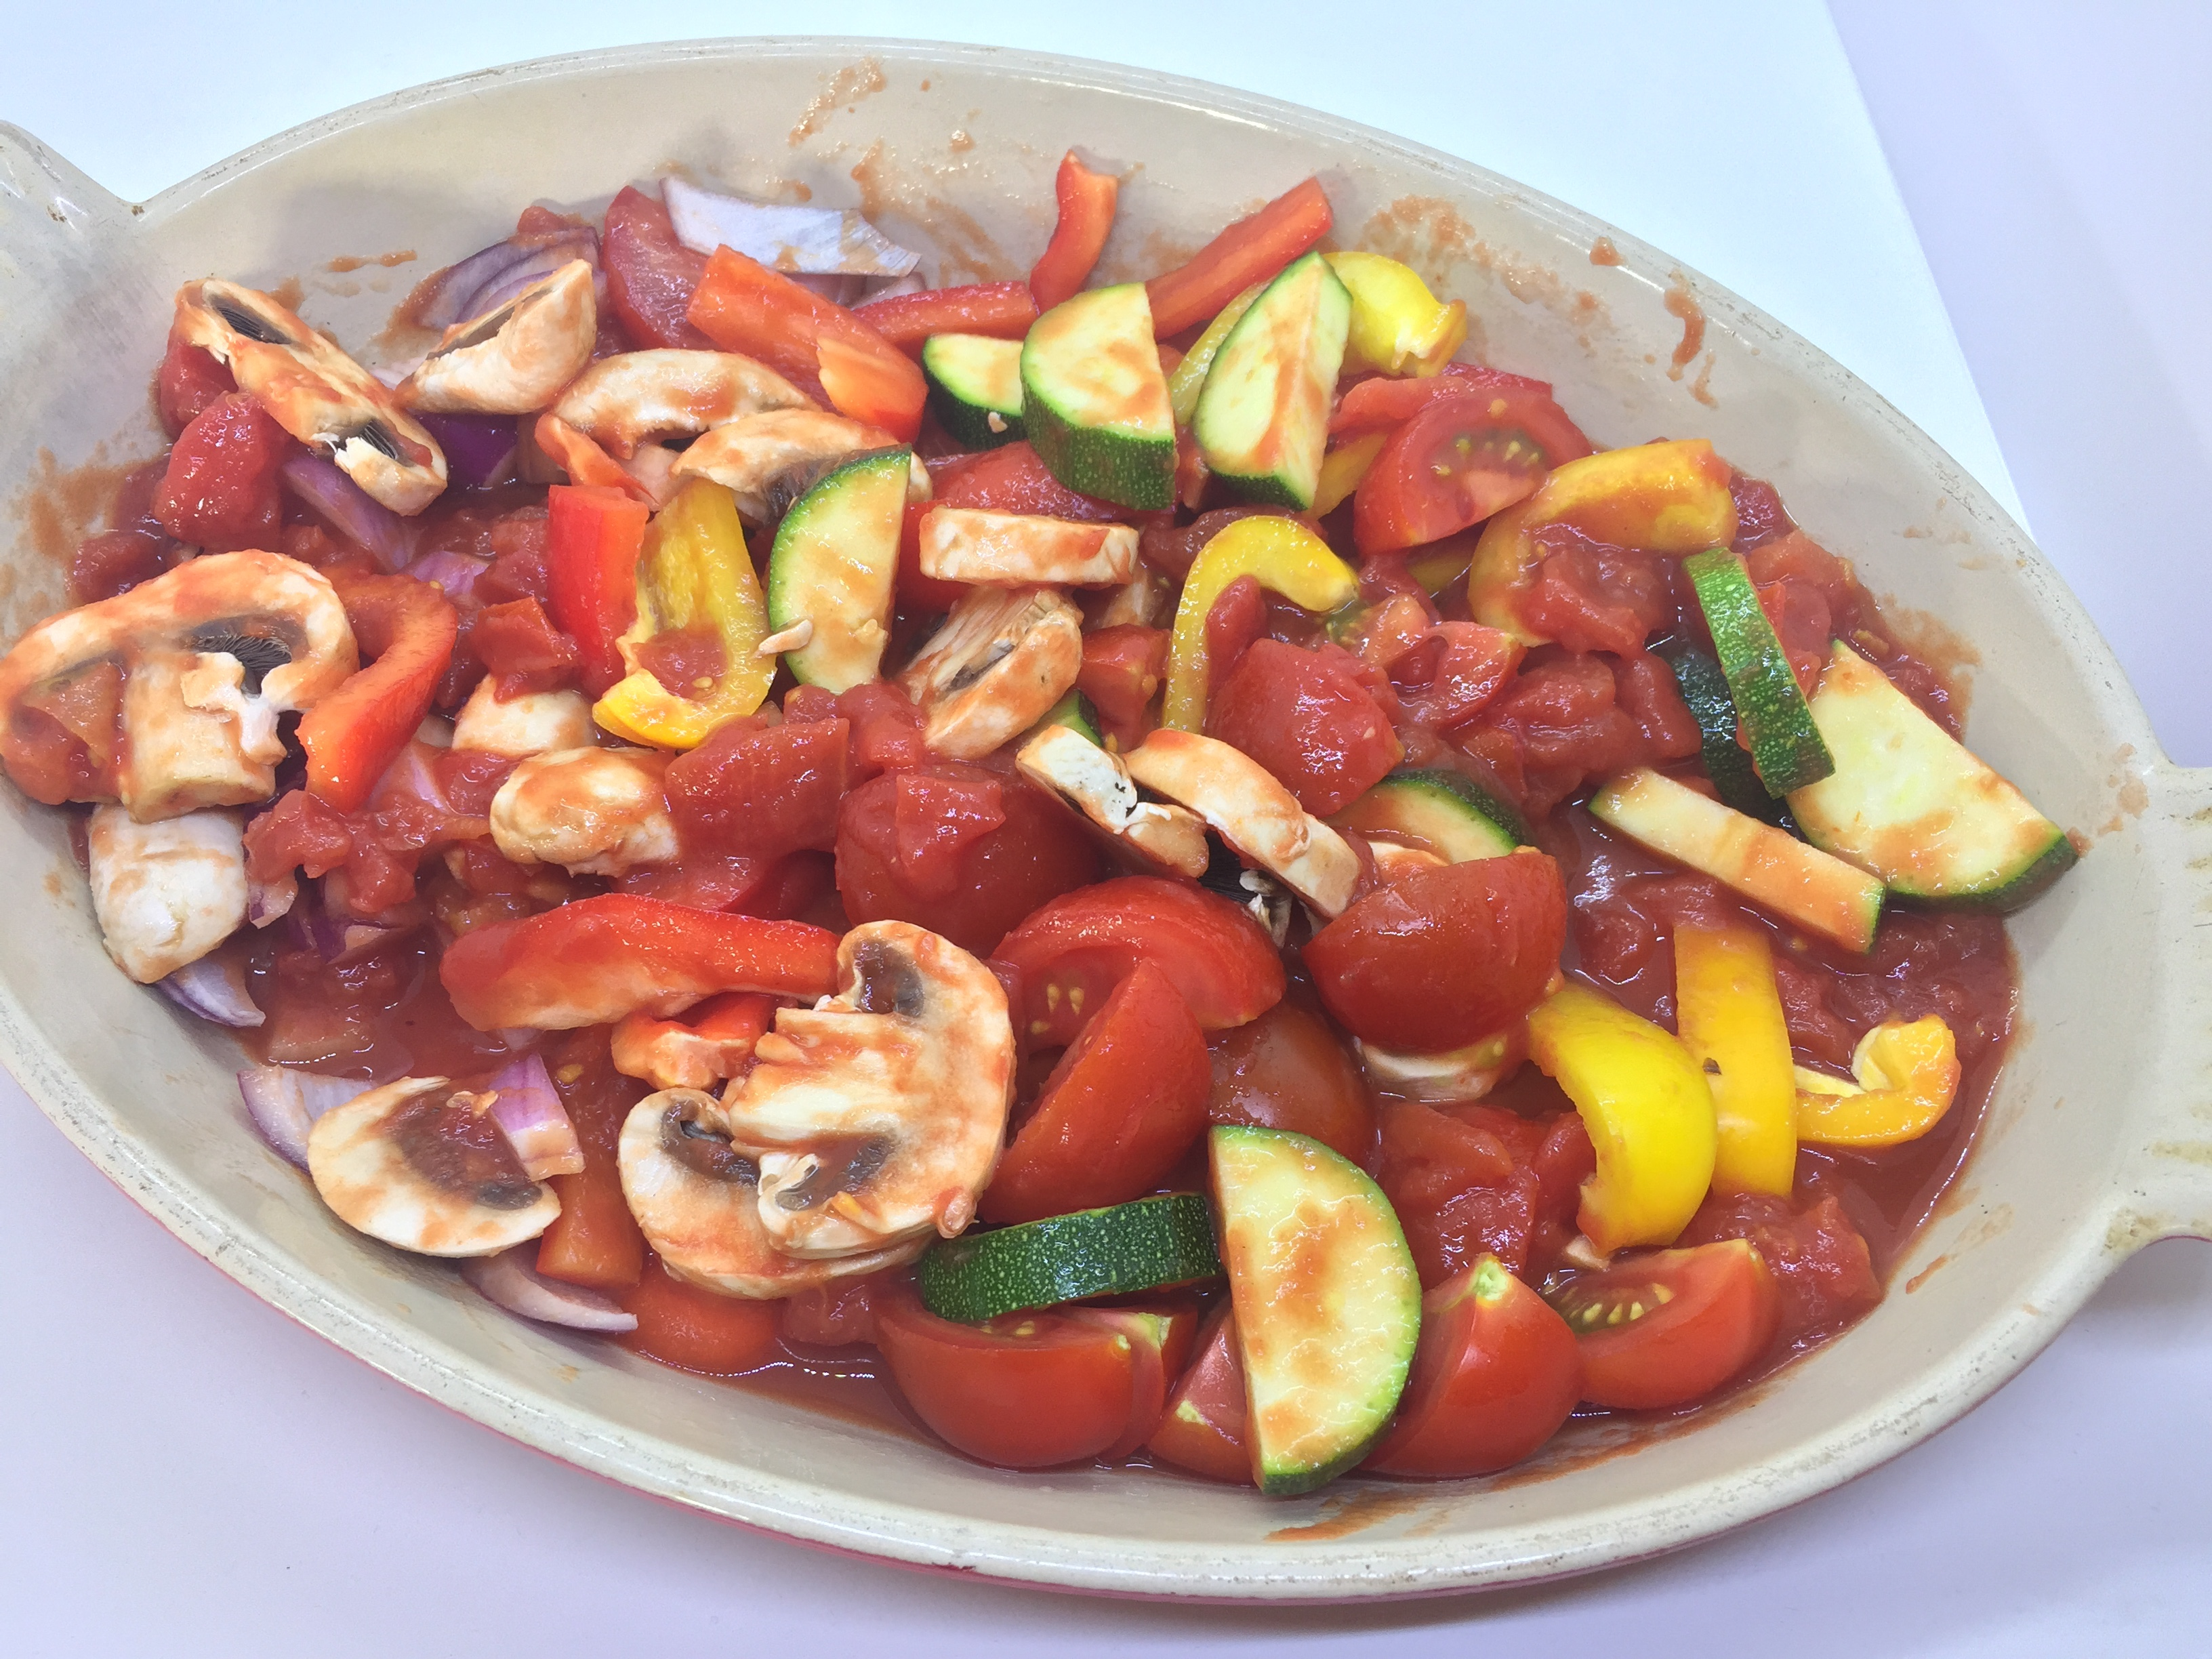 Adding tinned tomatoes and water